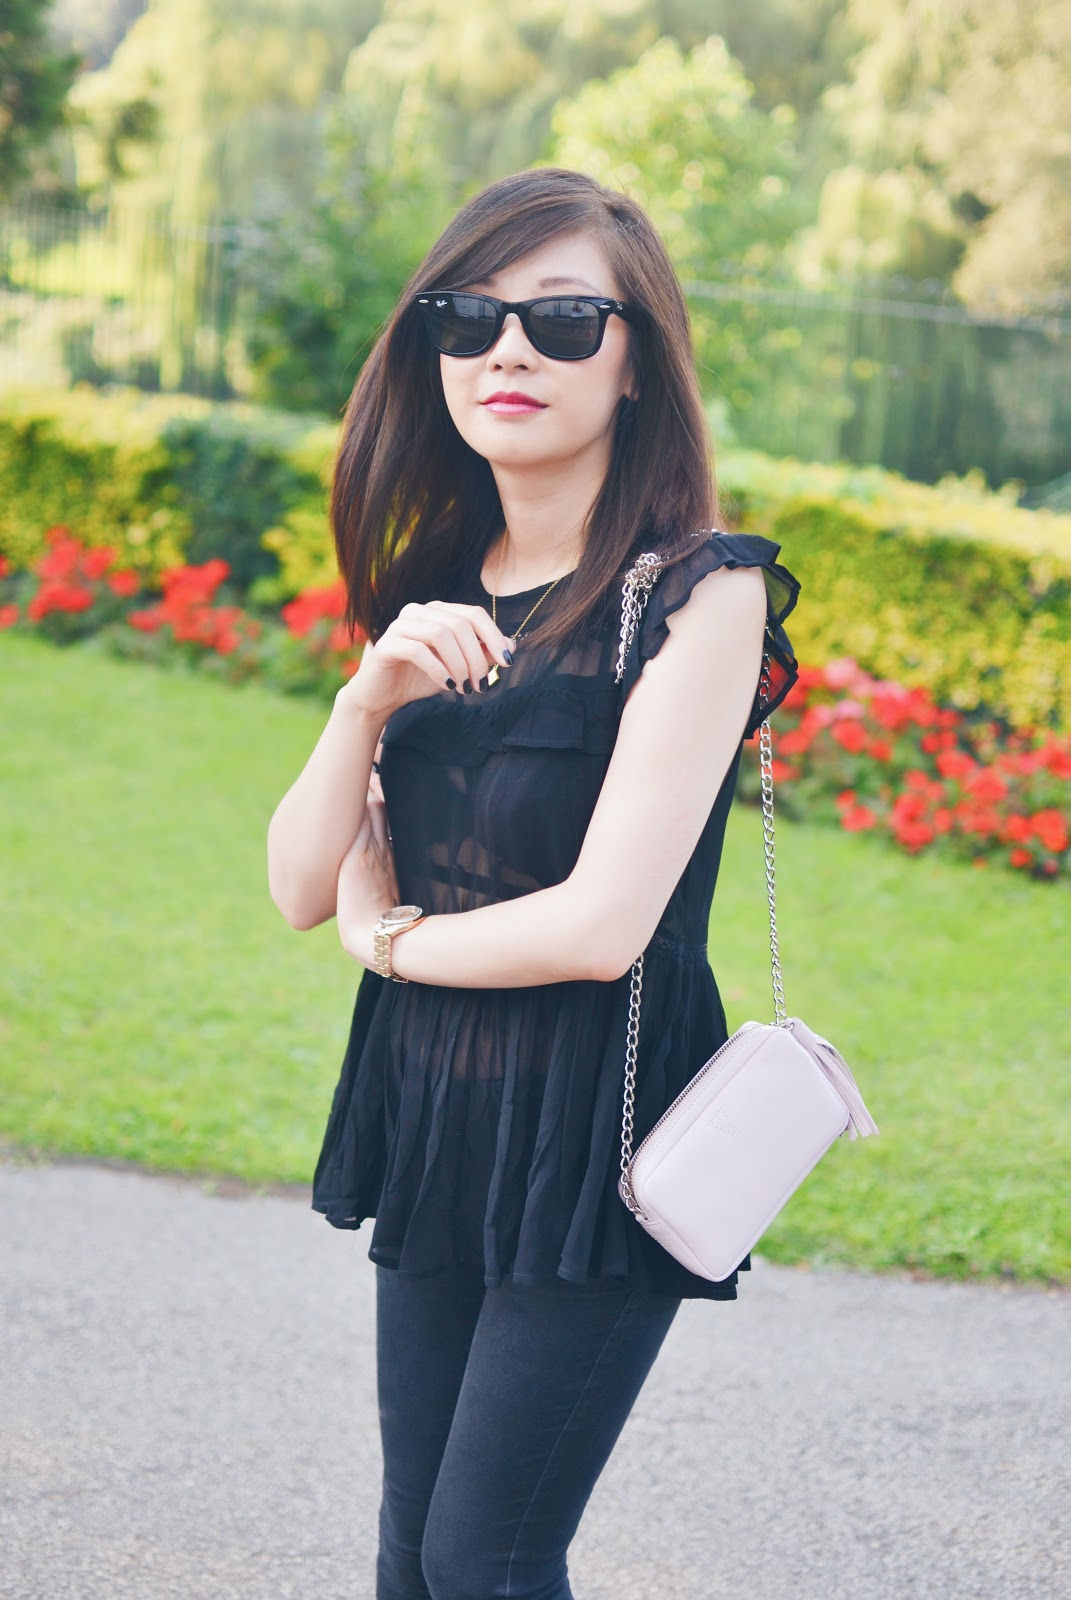 fashion blogger uk all black outfit, personal style, ootd, outfit of the day